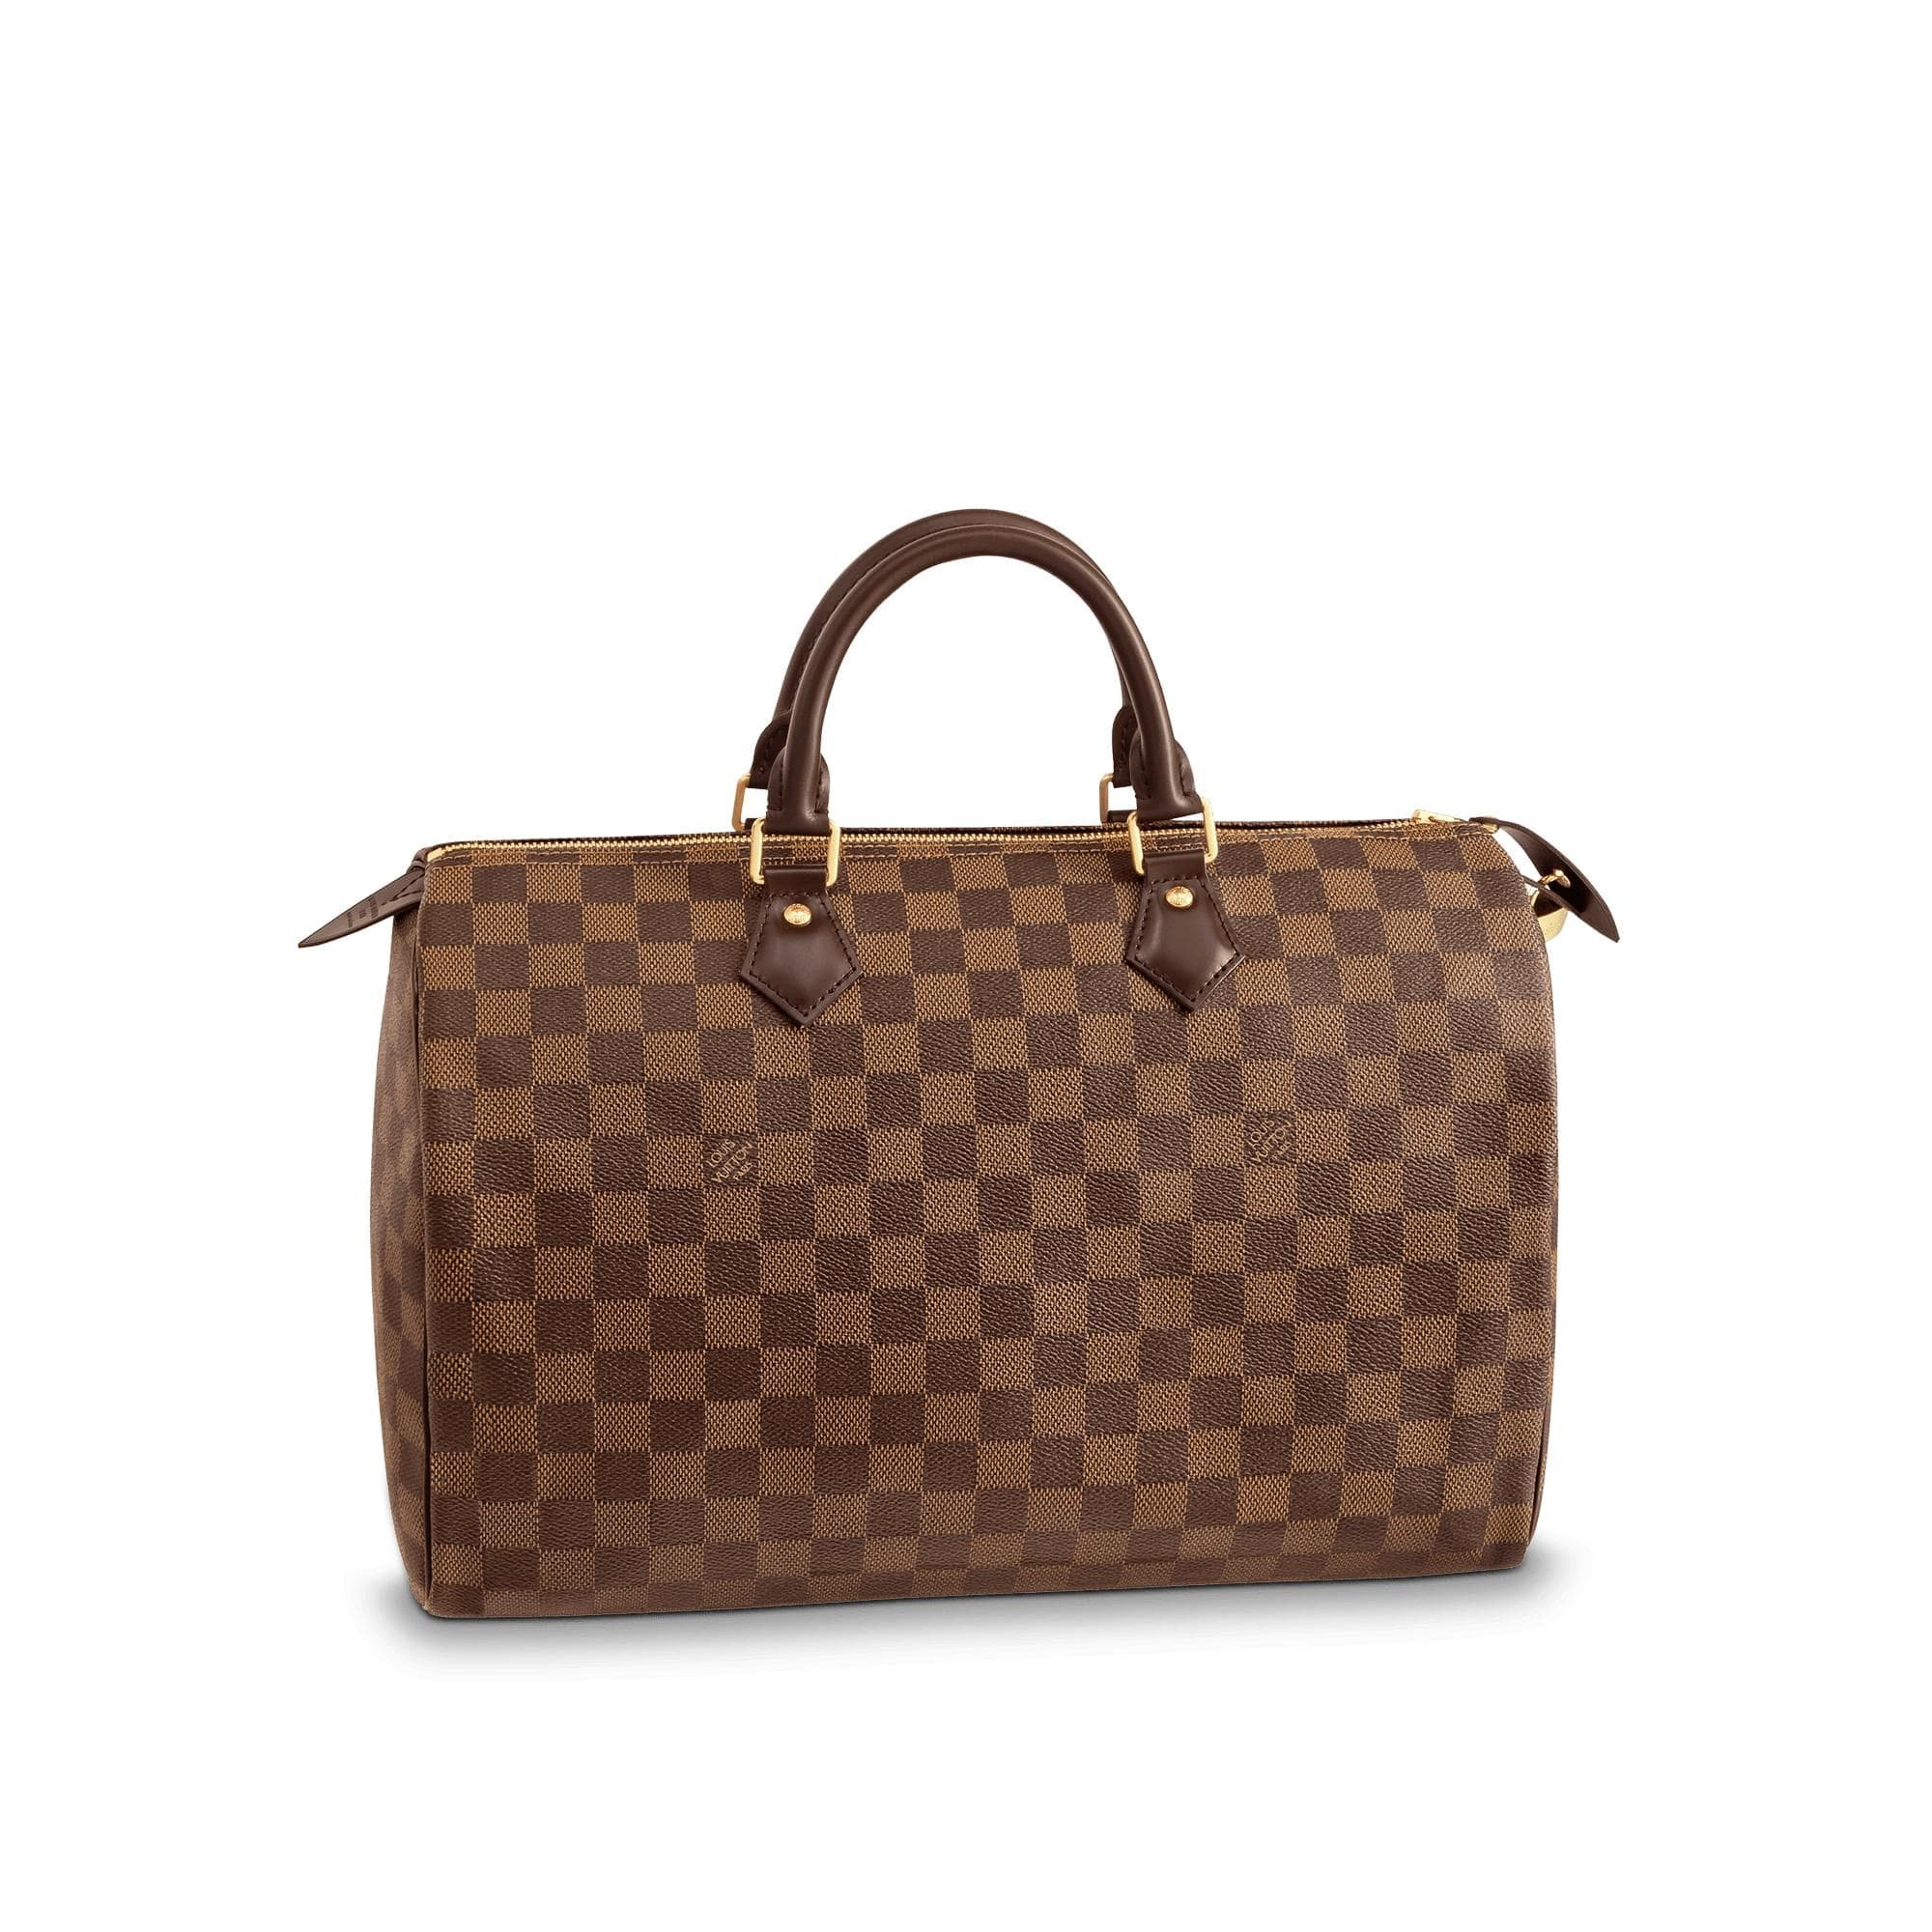 Louis Vuitton Speedy Damier Ebene 35 Brown